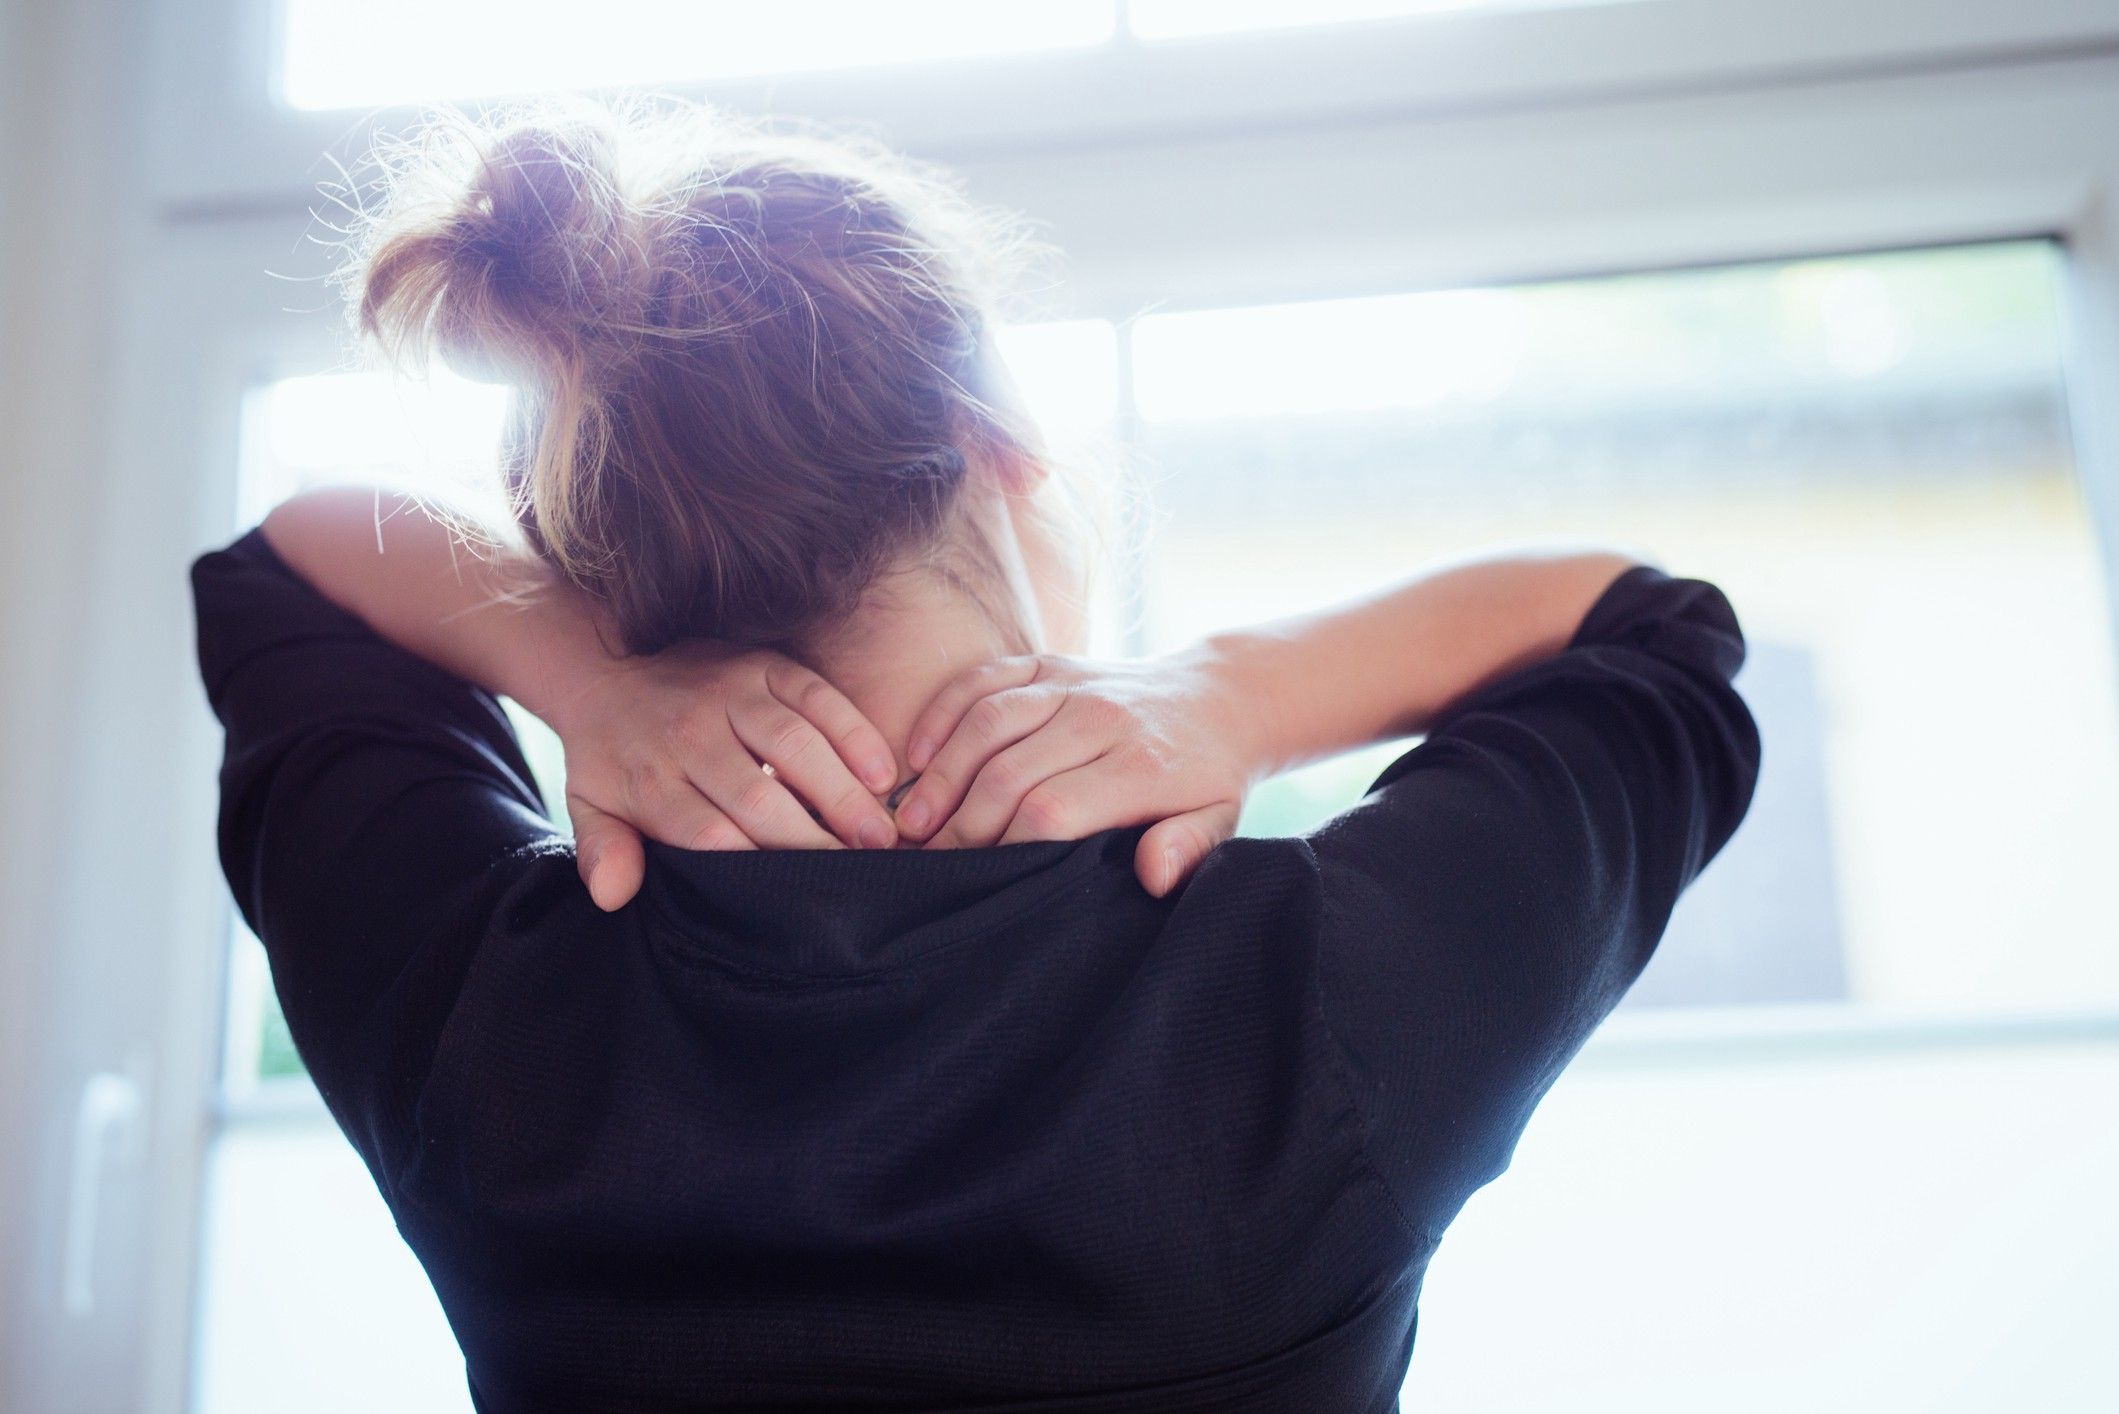 Rear view of a young woman looking out the window as she massages her neck.